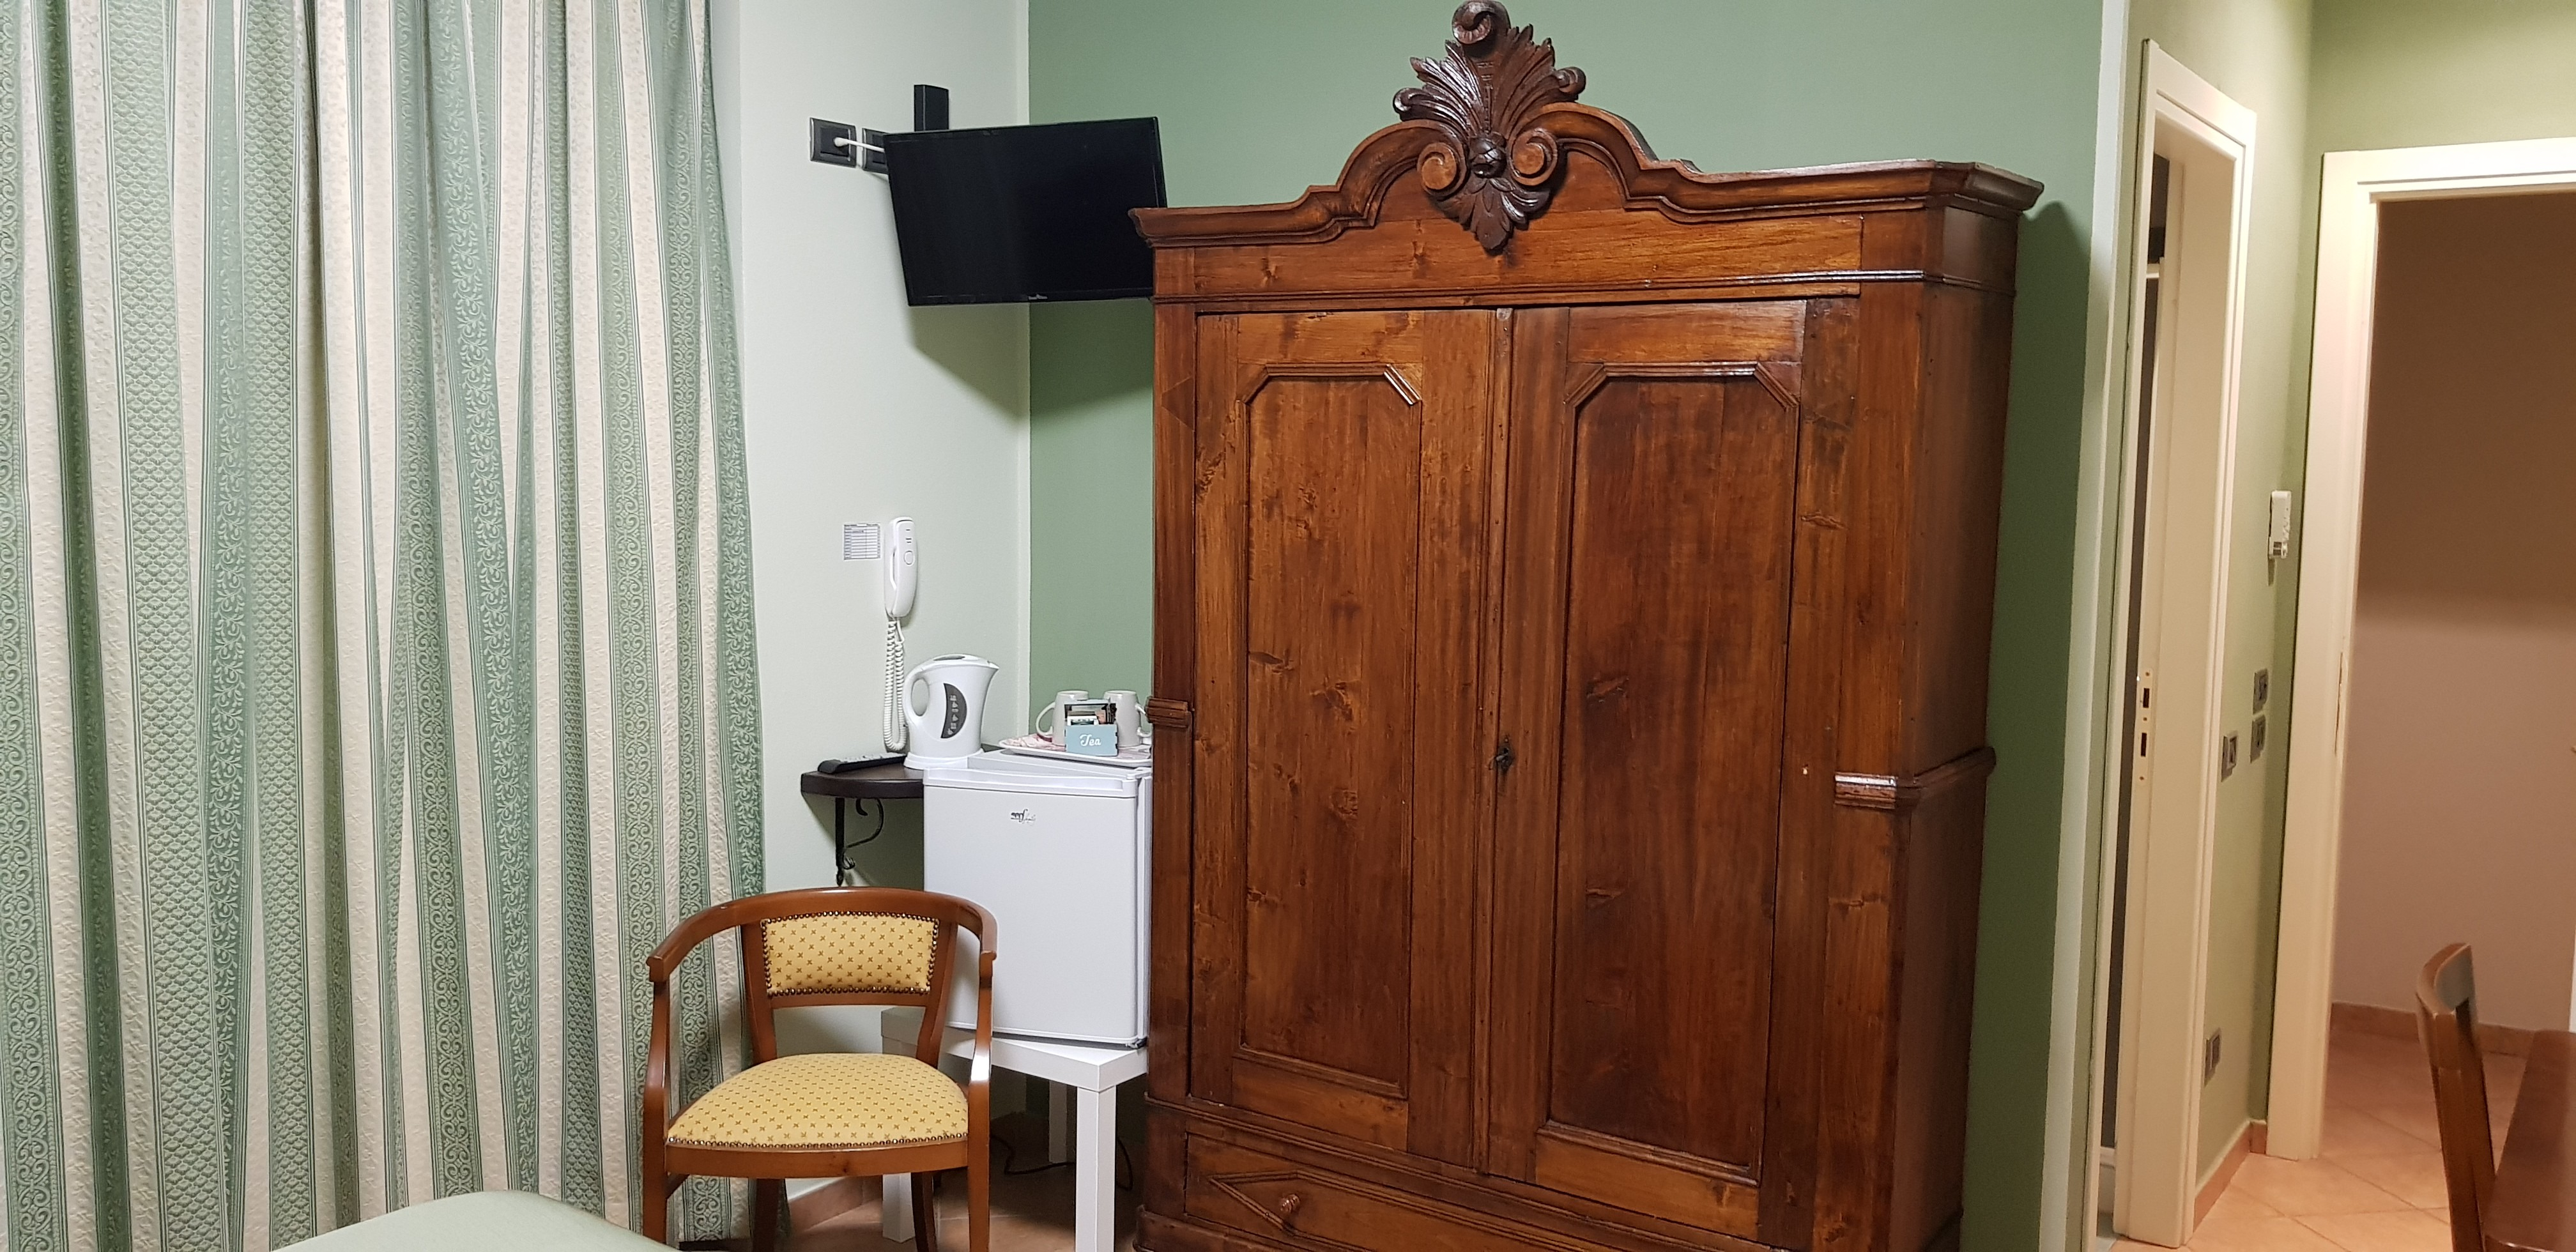 Double Business - Rooms 2-4